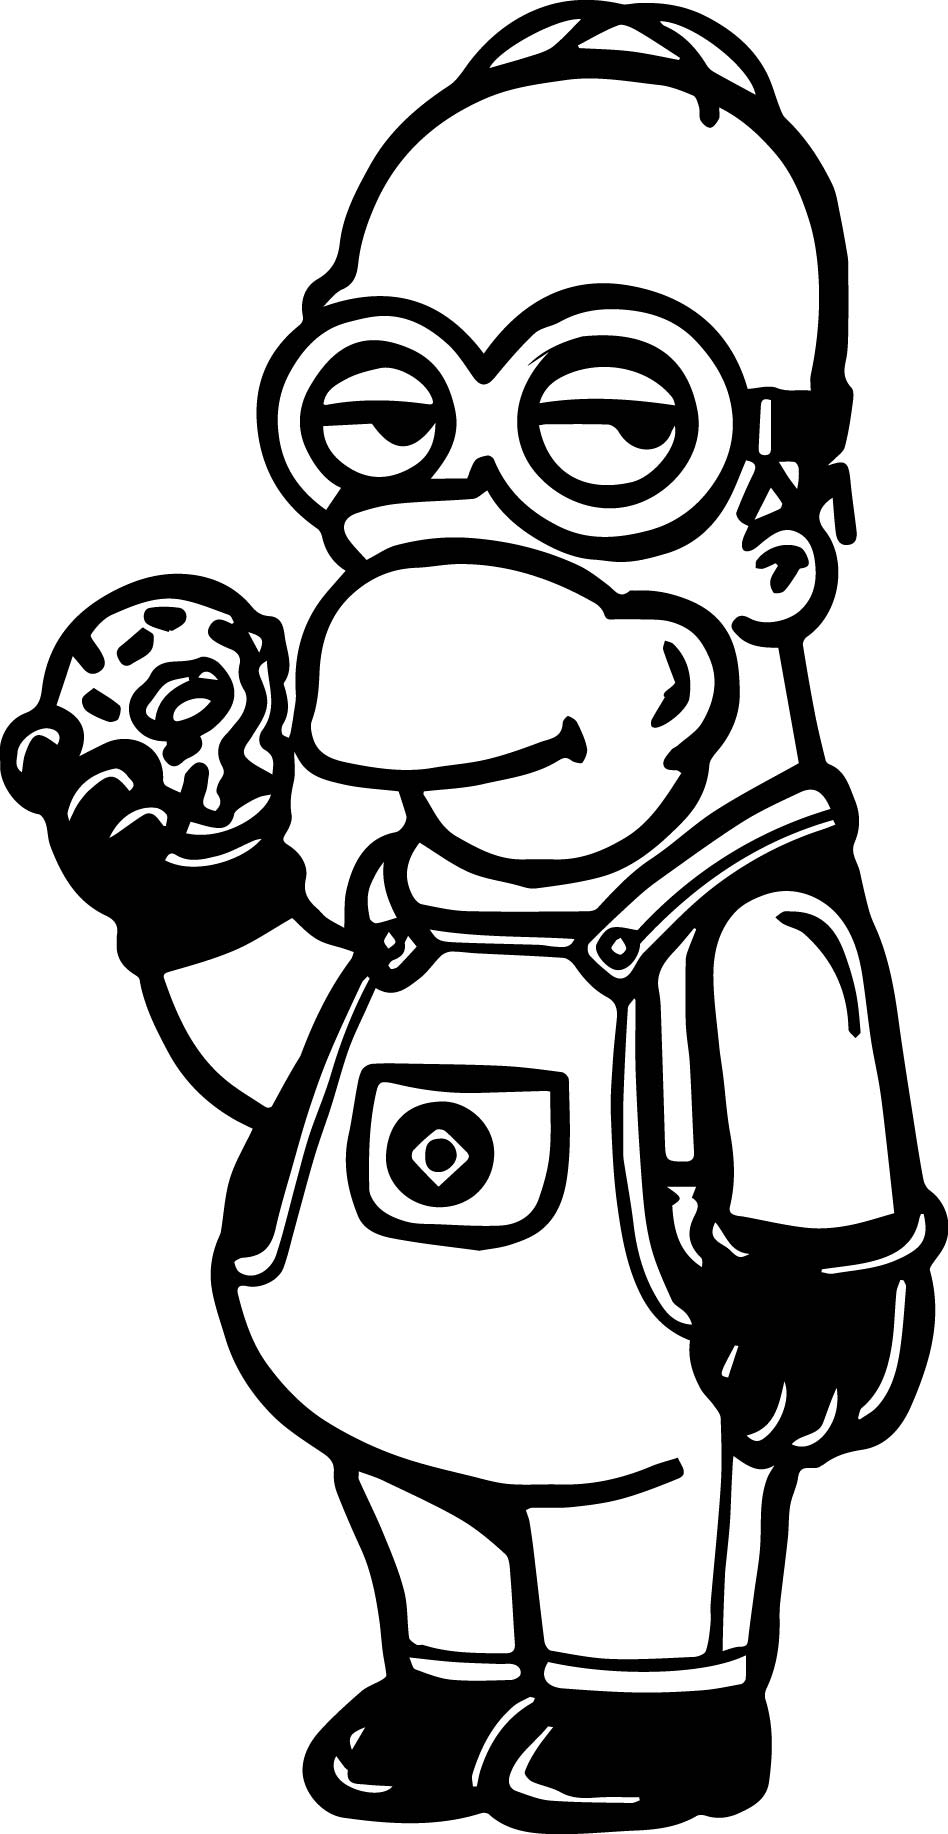 free minion coloring pages - free minions bob and stuart coloring page ecoloringpagecom